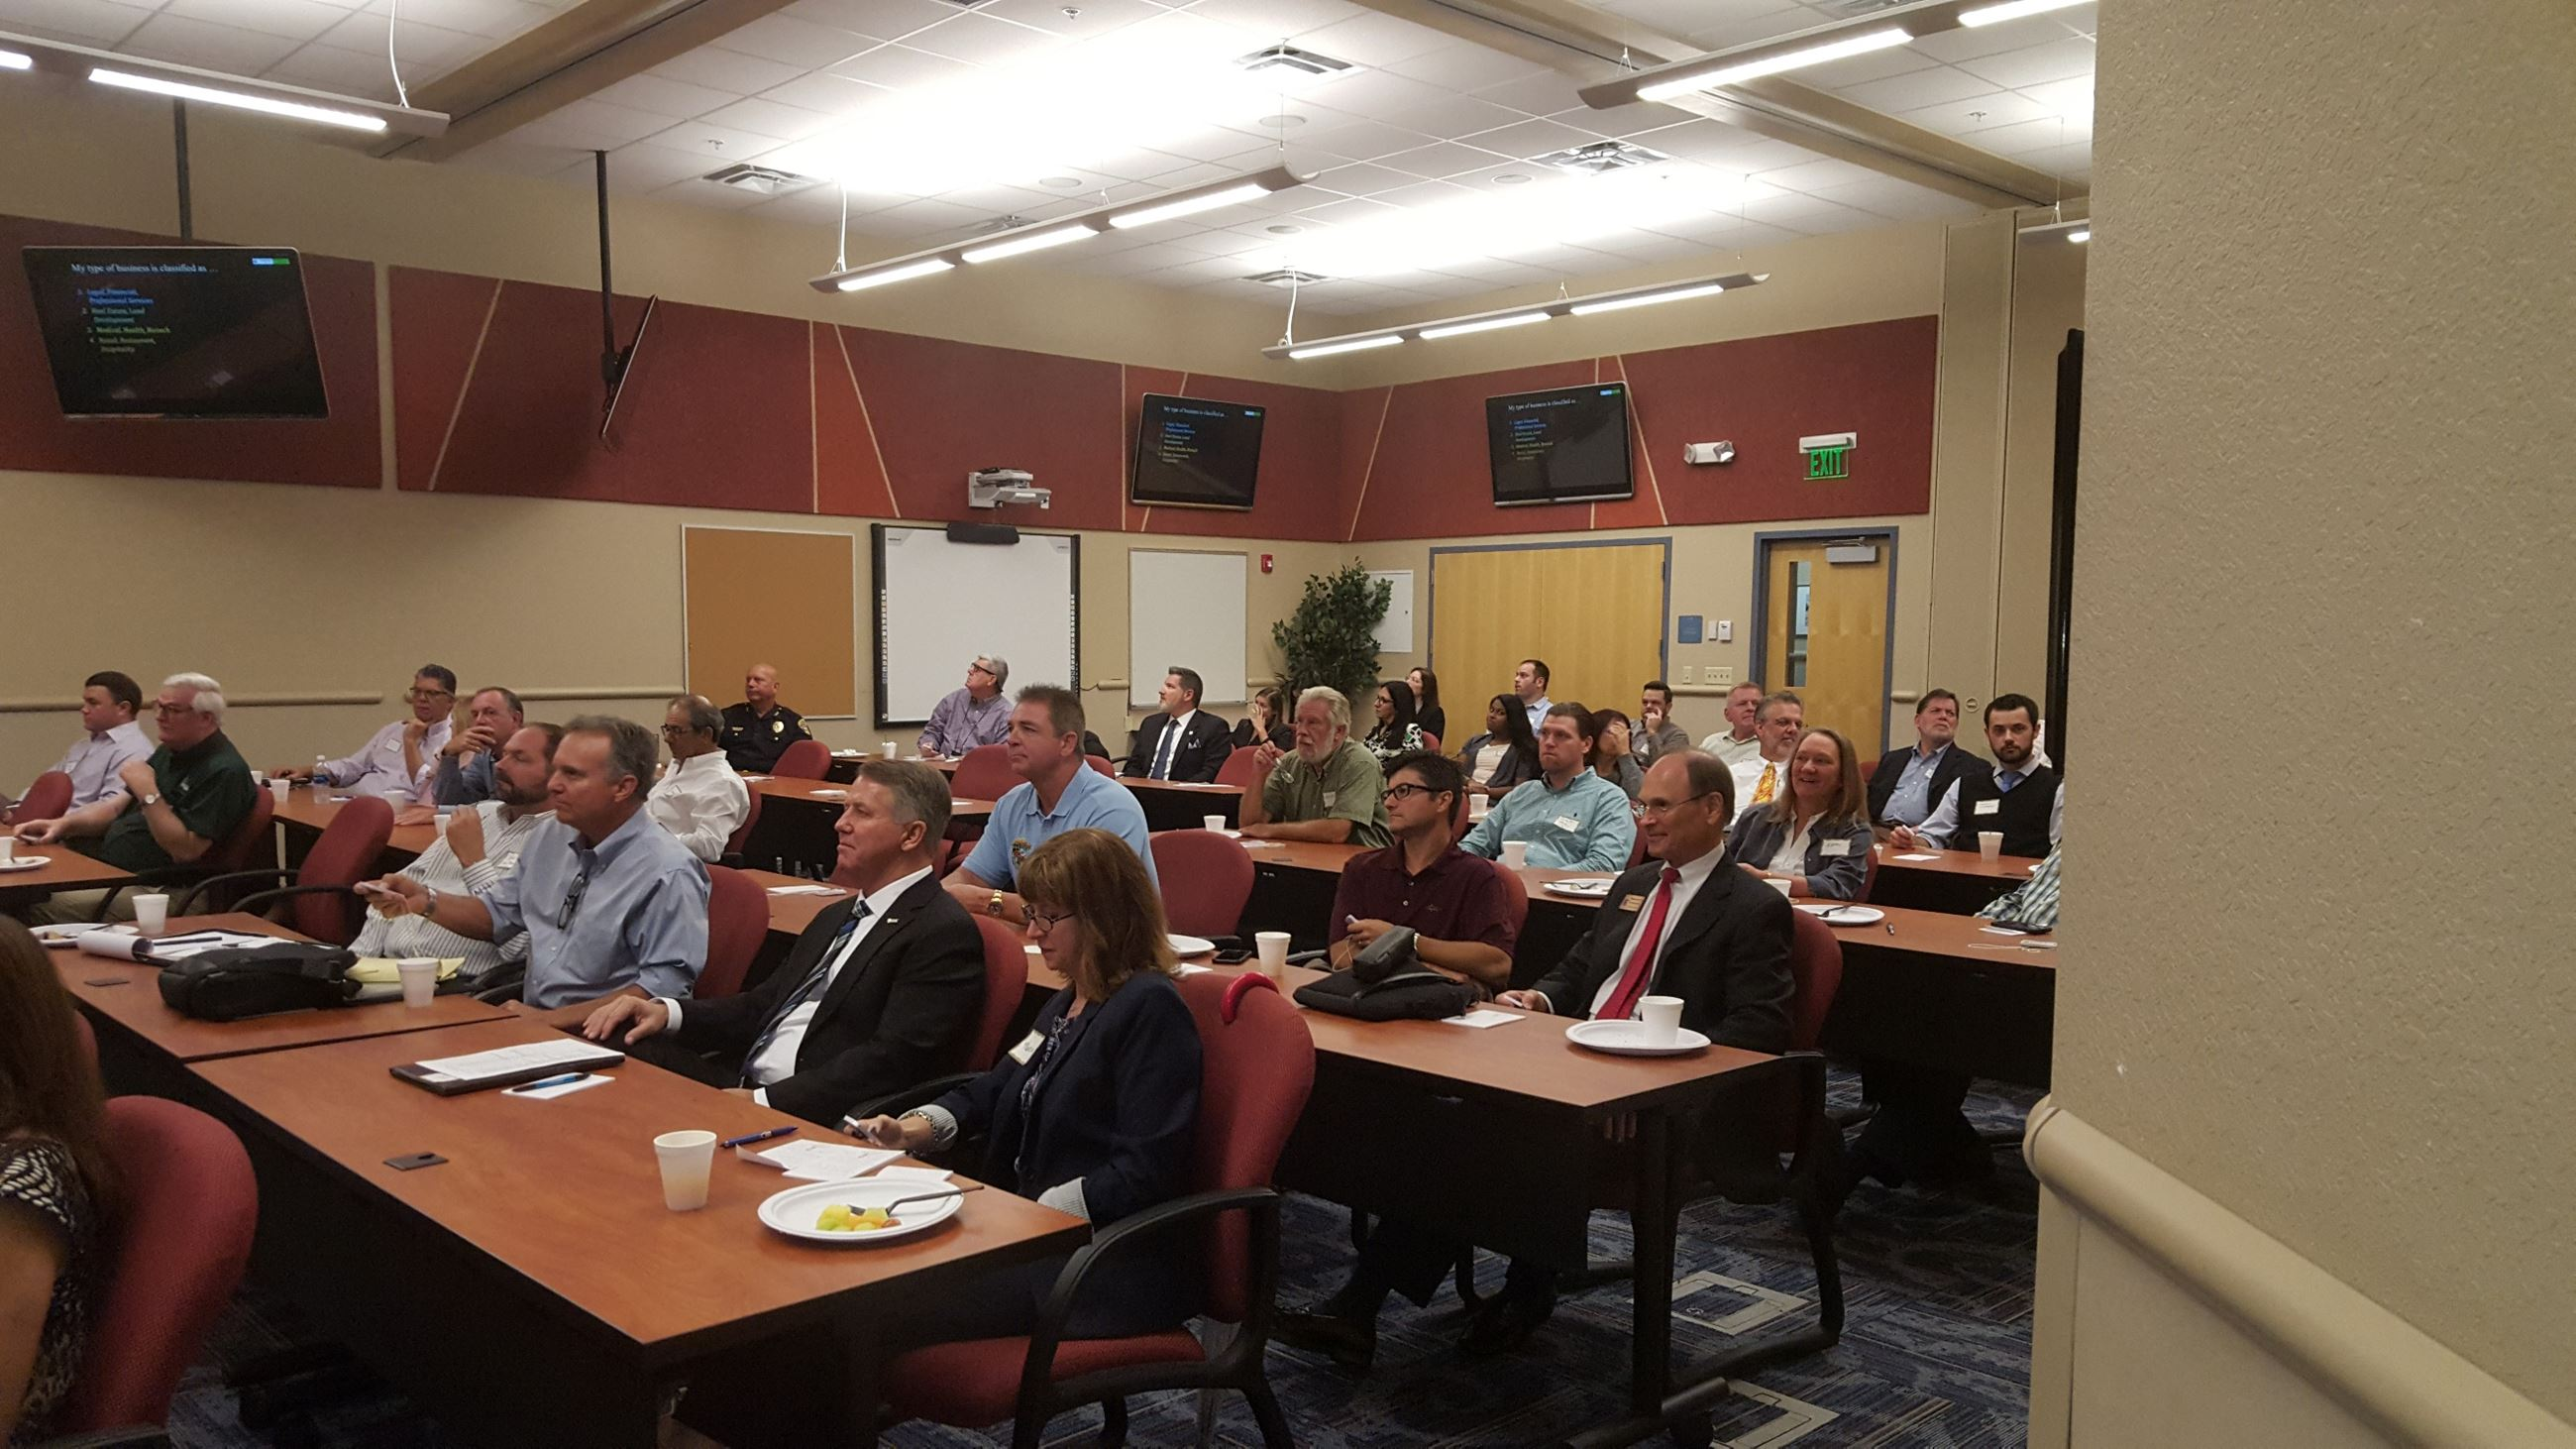 Business leaders listening to the presentation